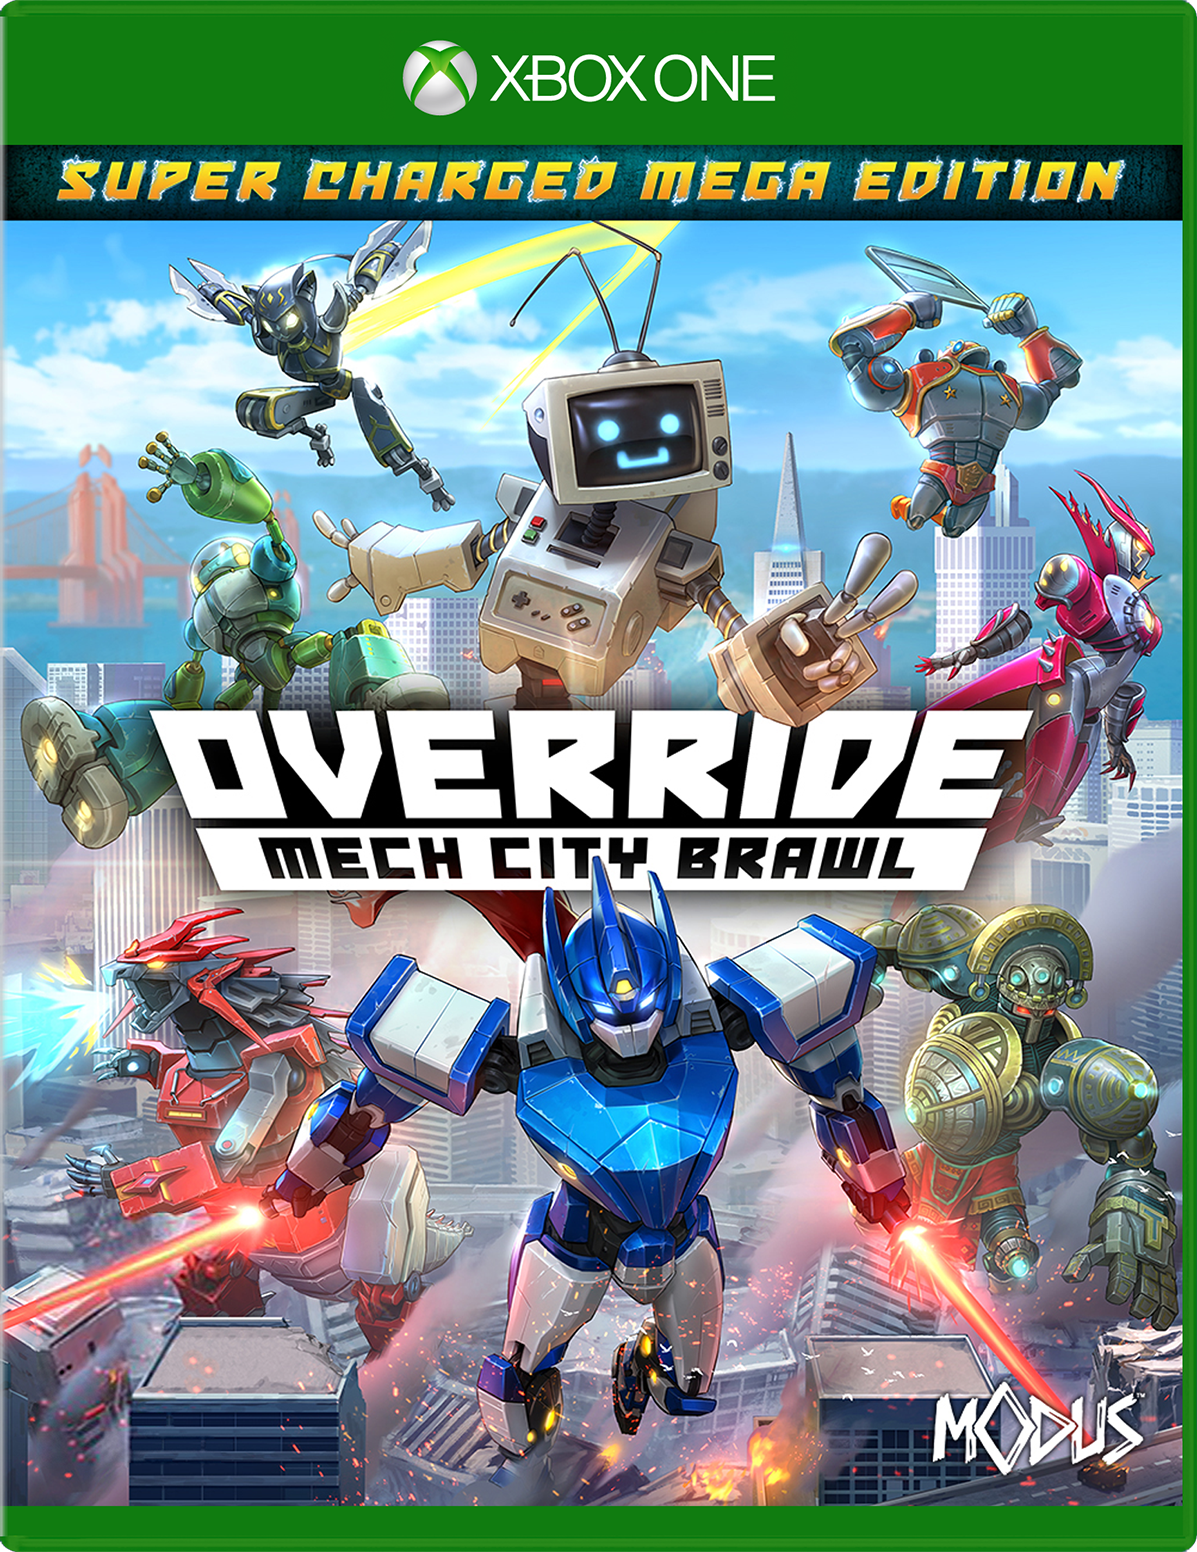 Cover of Override Mech City Brawl Super Charged Mega Edition for Xbox One